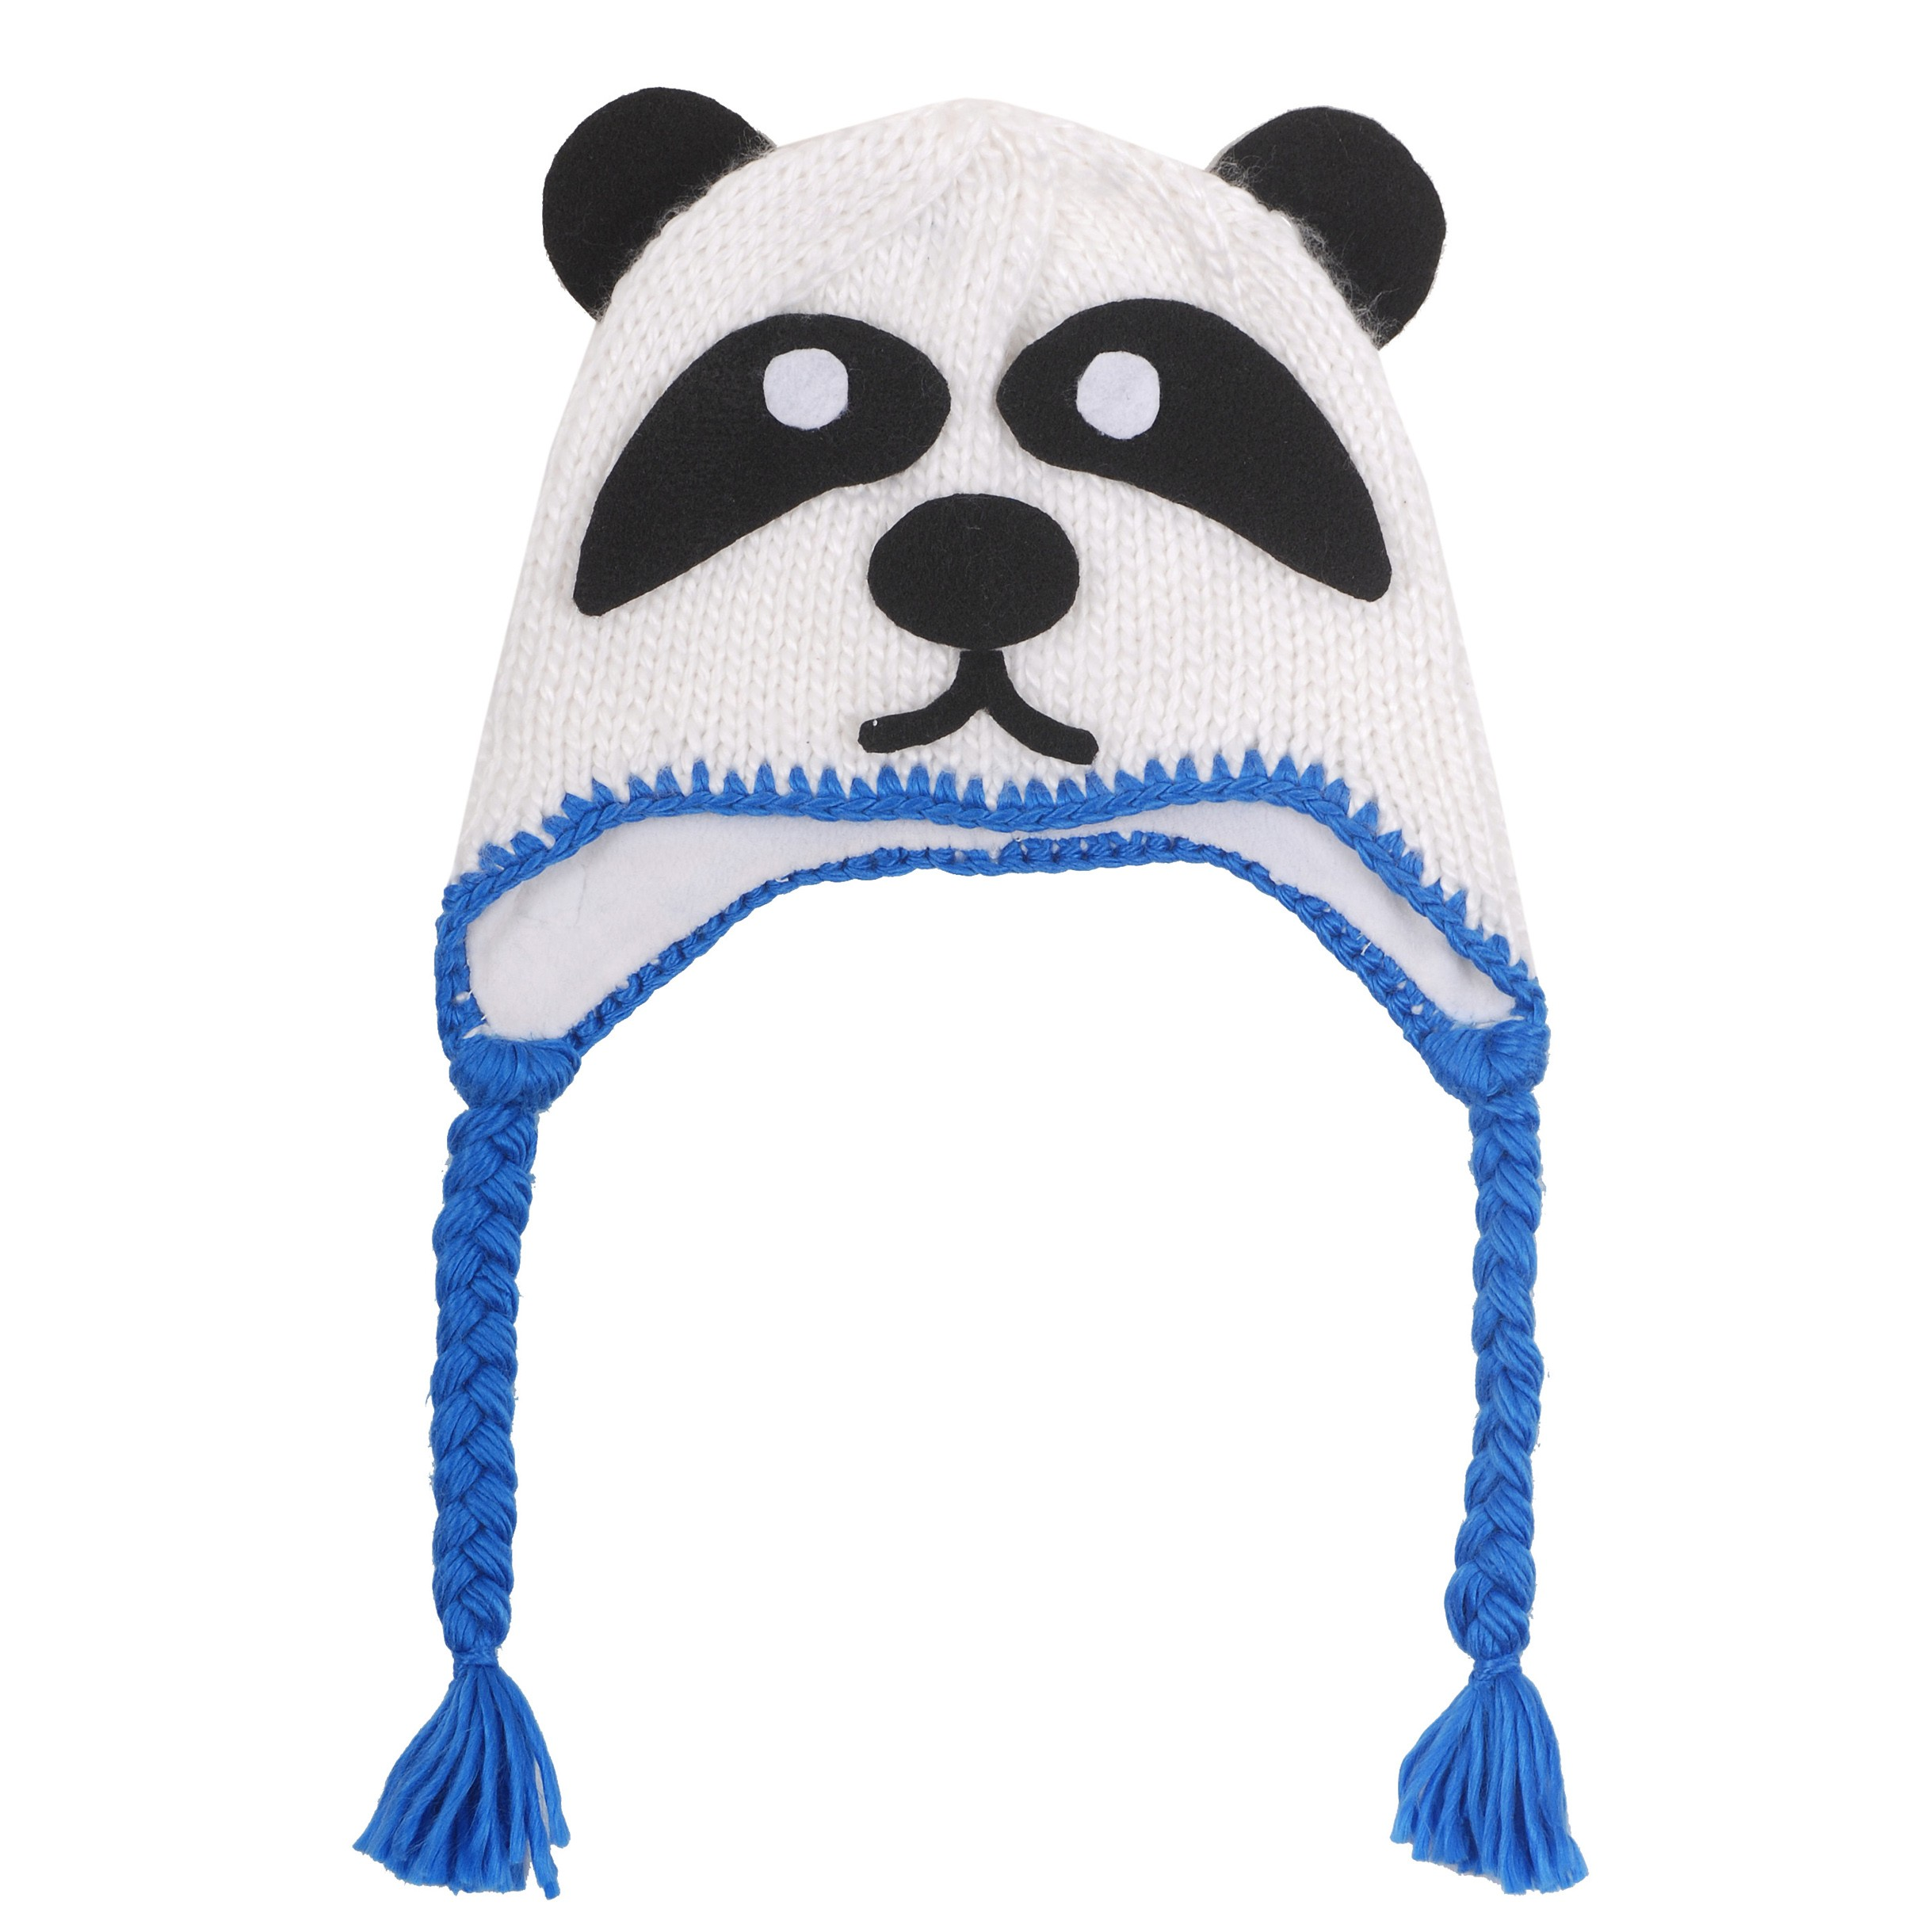 panda hat with ear flaps